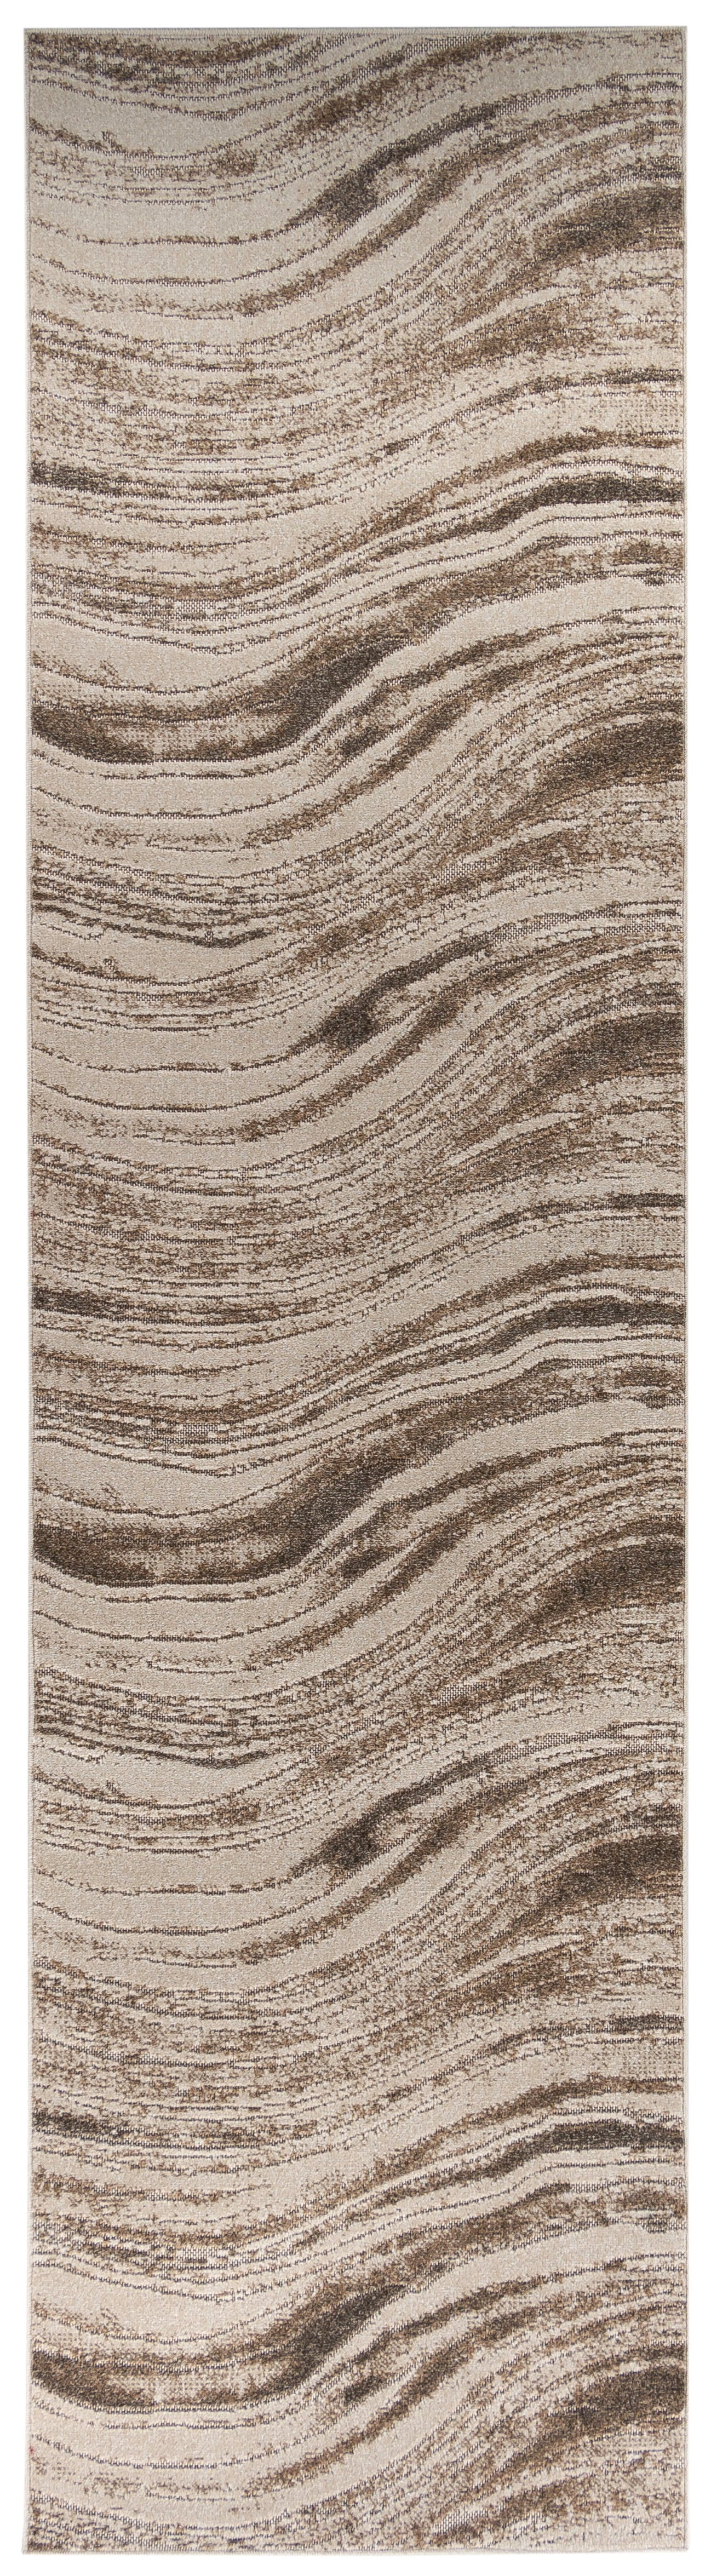 Sand Waves  Ethno Collection